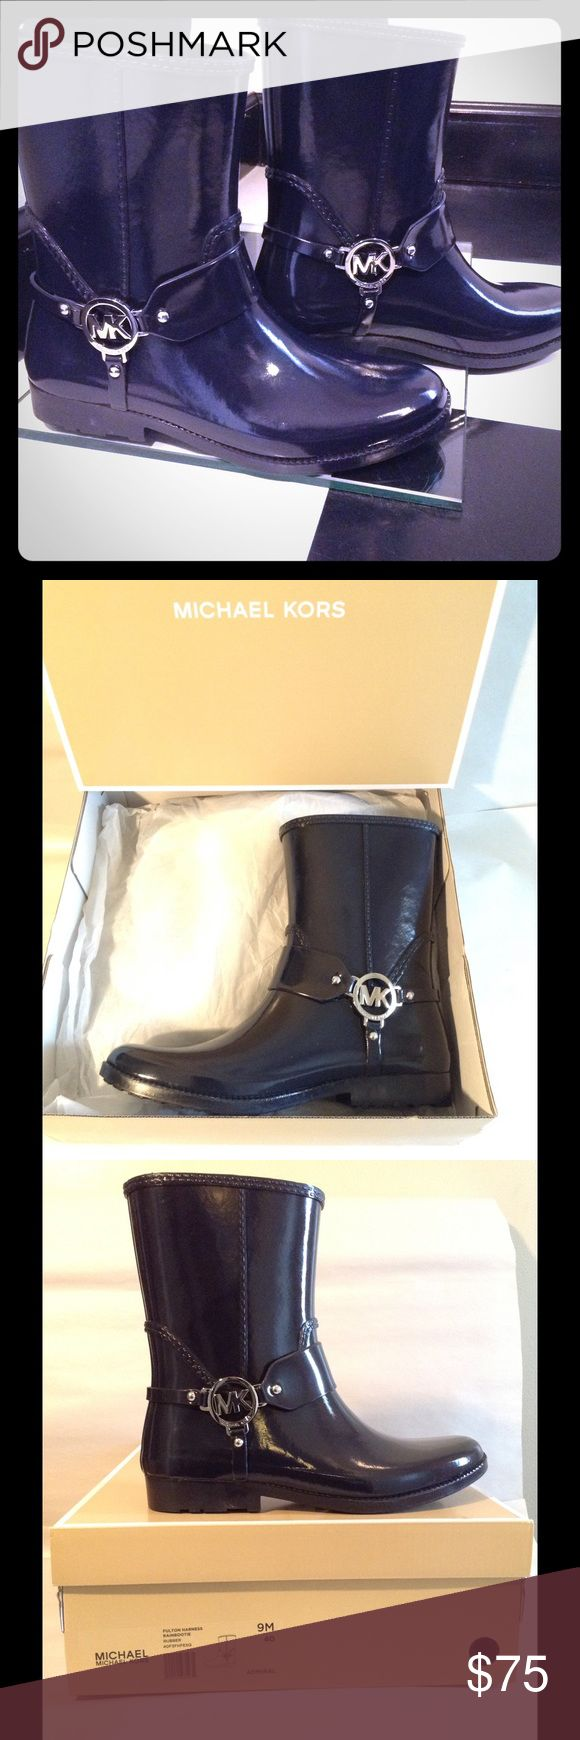 Mickeal Kors Harness Logo Rain Boots( Rainy Days) Michael michael Kors featured in the harness design with chrome MK logo on each side of the ankle. These boots slide on easily, they are water proof cute and comfortable, featured in admiral blue color. Boots  can be worn for rain or everyday styling even snow, statement boots. MICHAEL Michael Kors Shoes Winter & Rain Boots